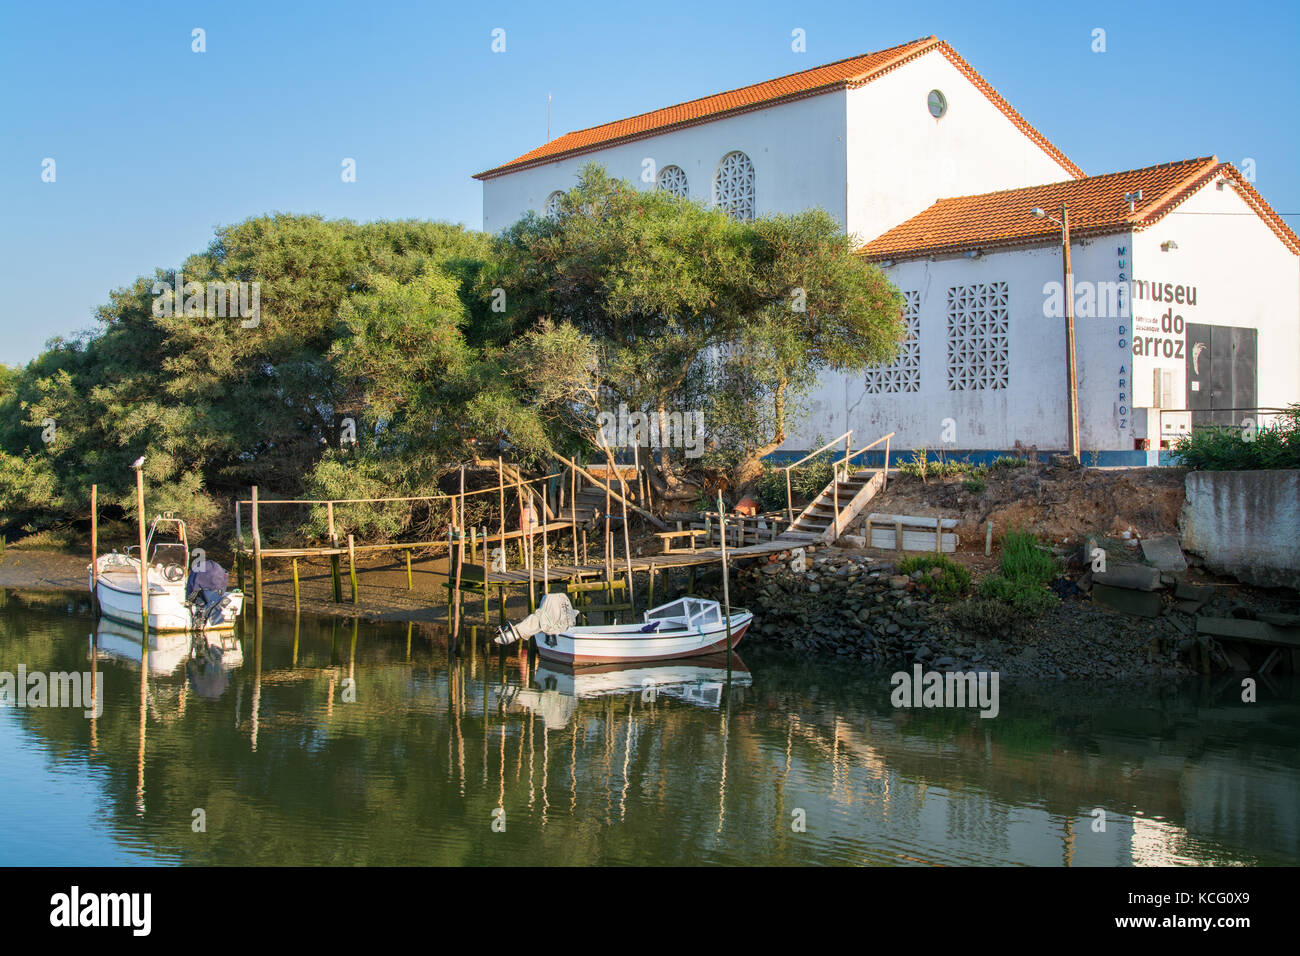 Alentejo Portugal. 06 September 2017.Rice Museum in Comporta Alentejo, Portugal. photography by Ricardo Rocha. - Stock Image